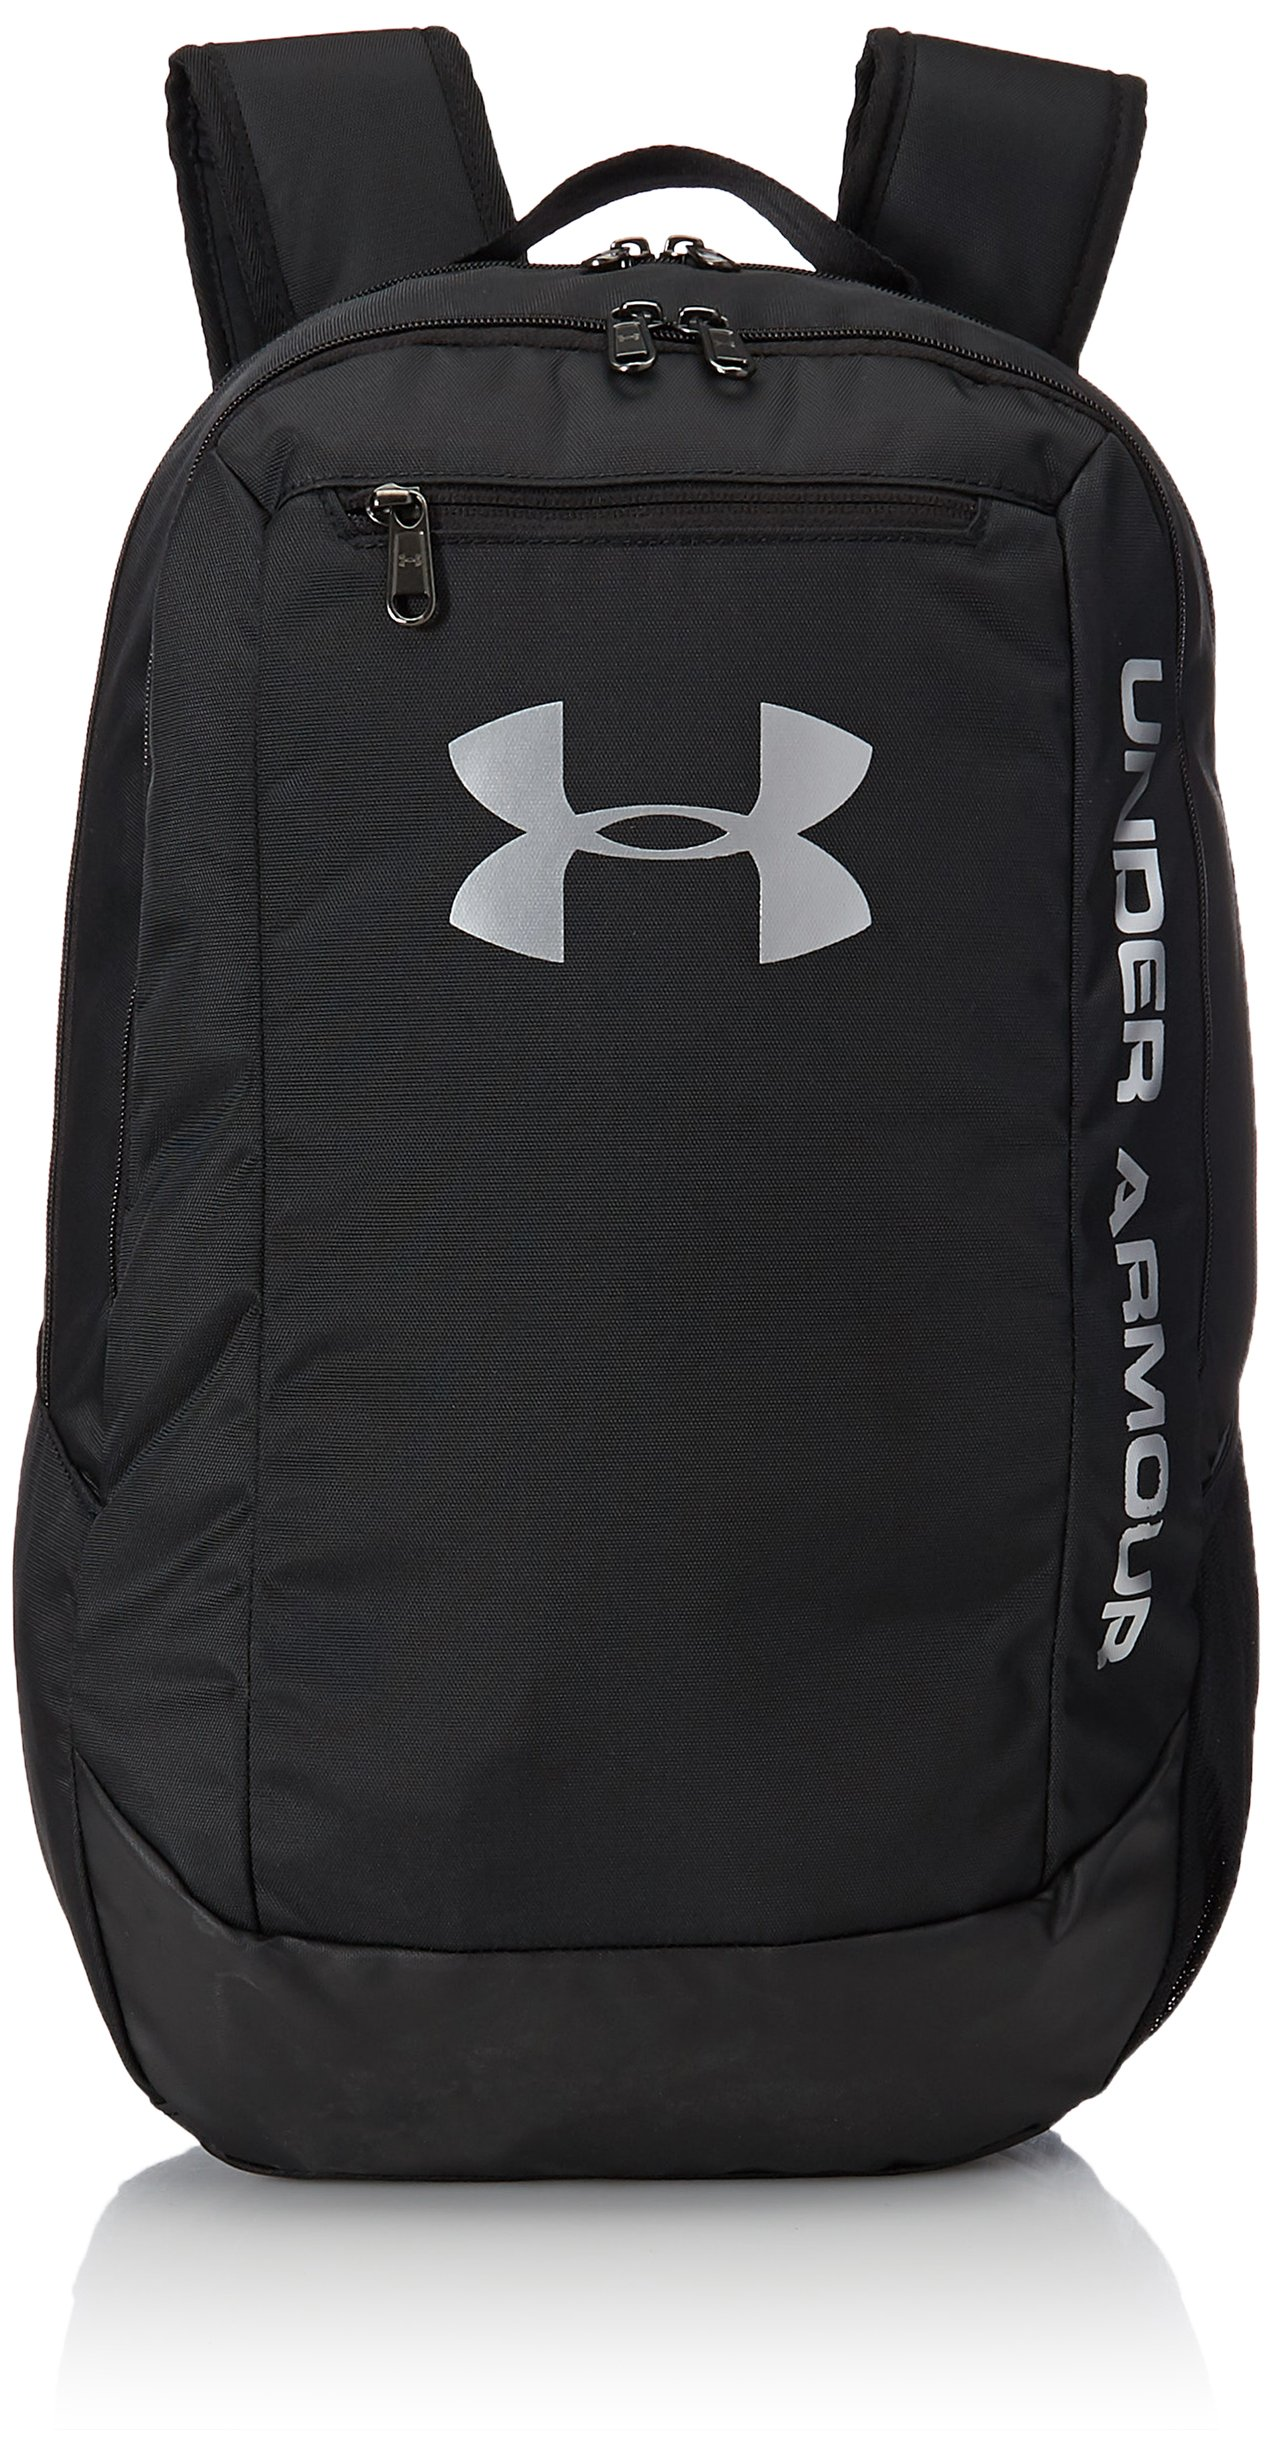 Under Armour Hustle LDWR Backpack One Size Black Black Silver